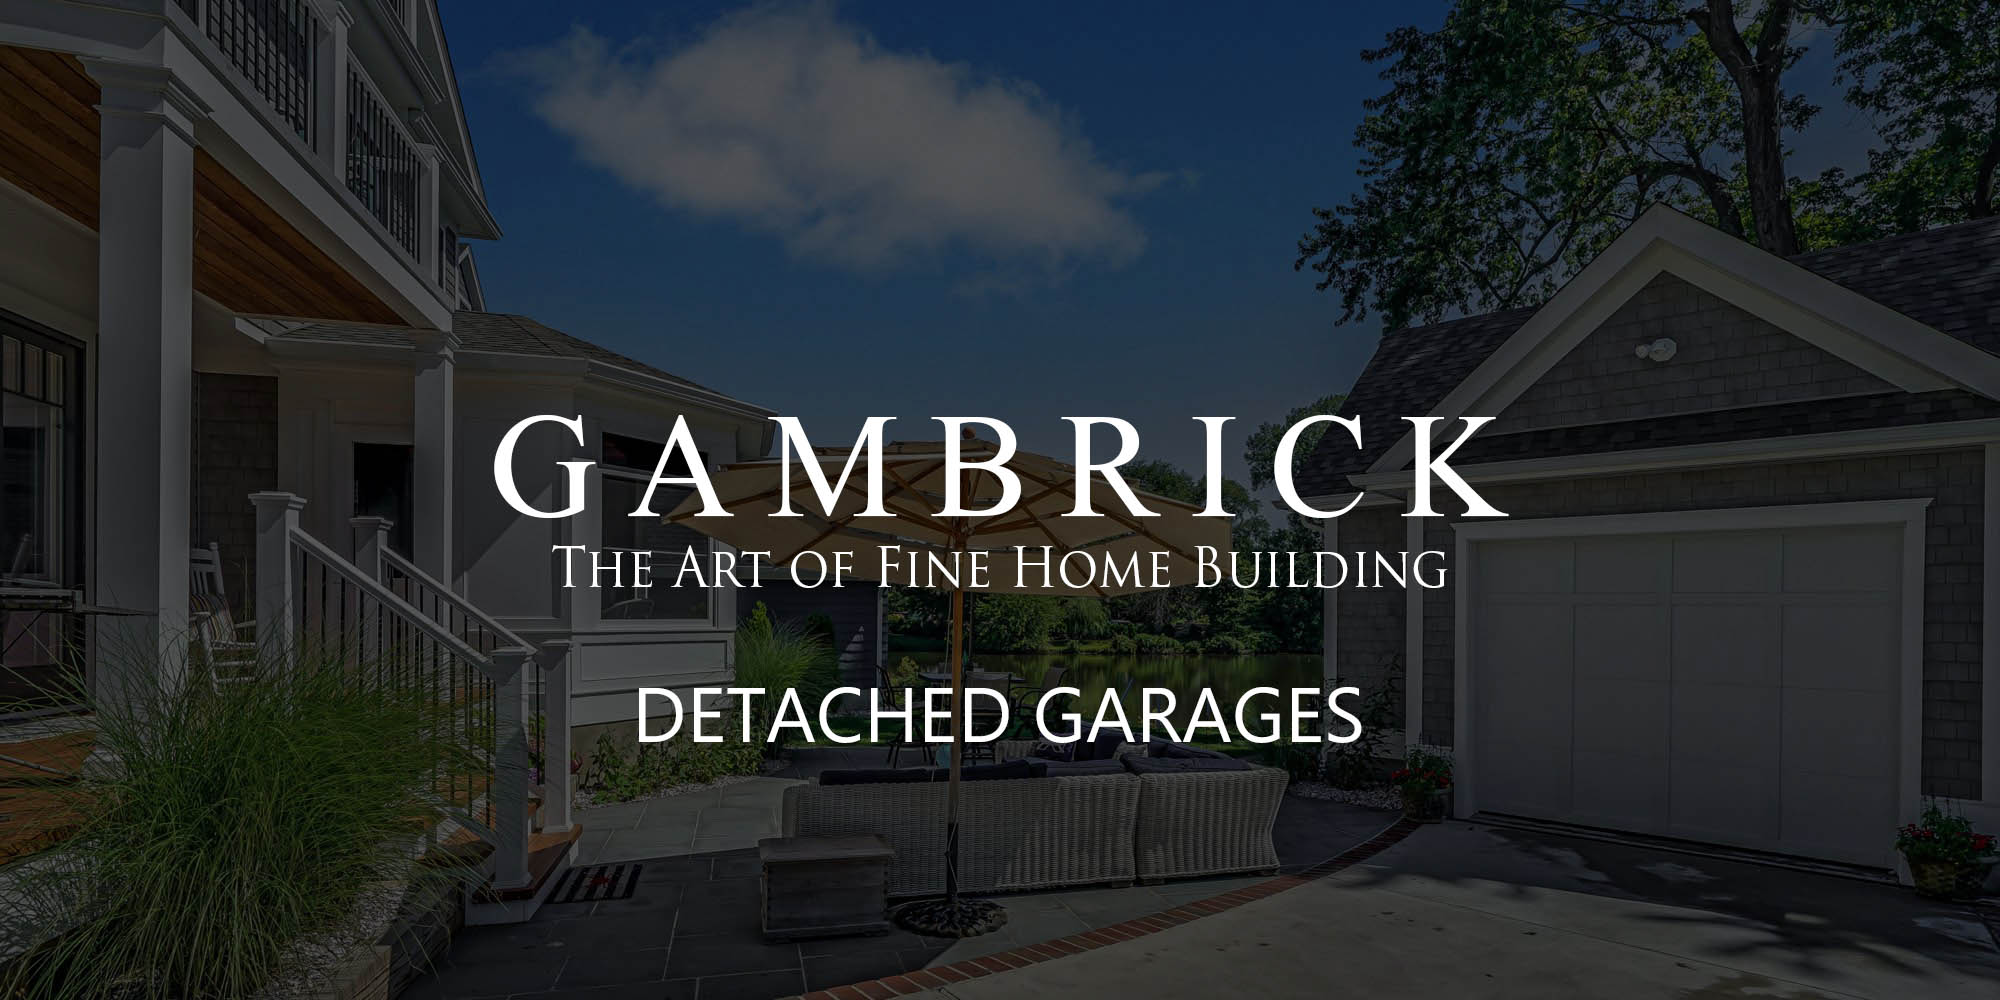 detached garage ideas logo banner for detached garage ideas blog post - Gambrick